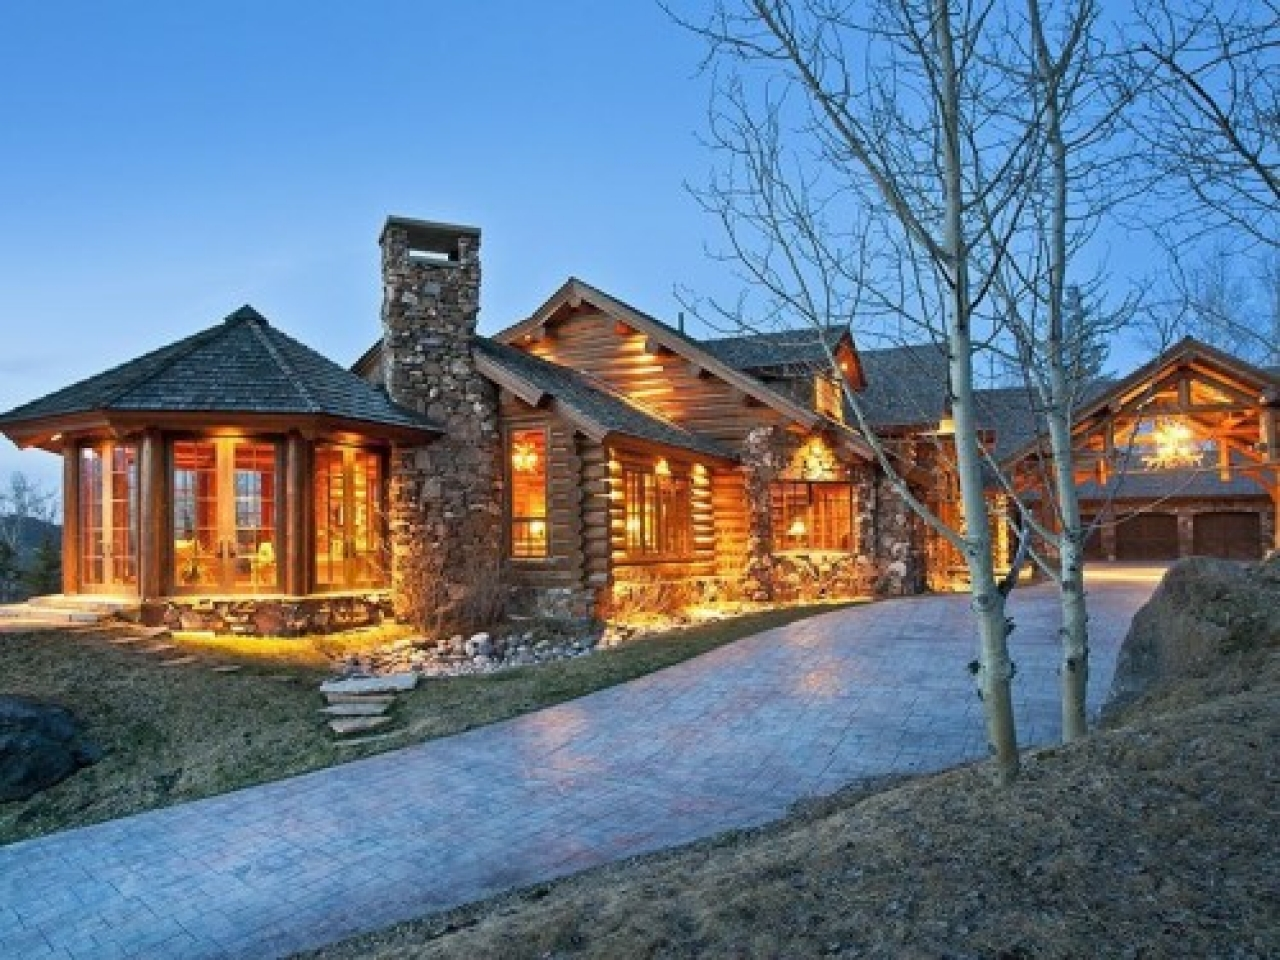 Ranch Cabin Home Plans on ranch farmhouse plans, lodge style house plans, ranch log homes, ranch modular plans, large open ranch plans, ranch duplex plans, ranch barn plans, ranch country, ranch wallpaper, ranch lodge plans, ranch model floor plans, ranch blueprints, ranch deck plans, ranch style, ranch open floor plans, ranch basement plans, ranch home renovation, ranch condo plans, ranch trailers, ranch vacation,